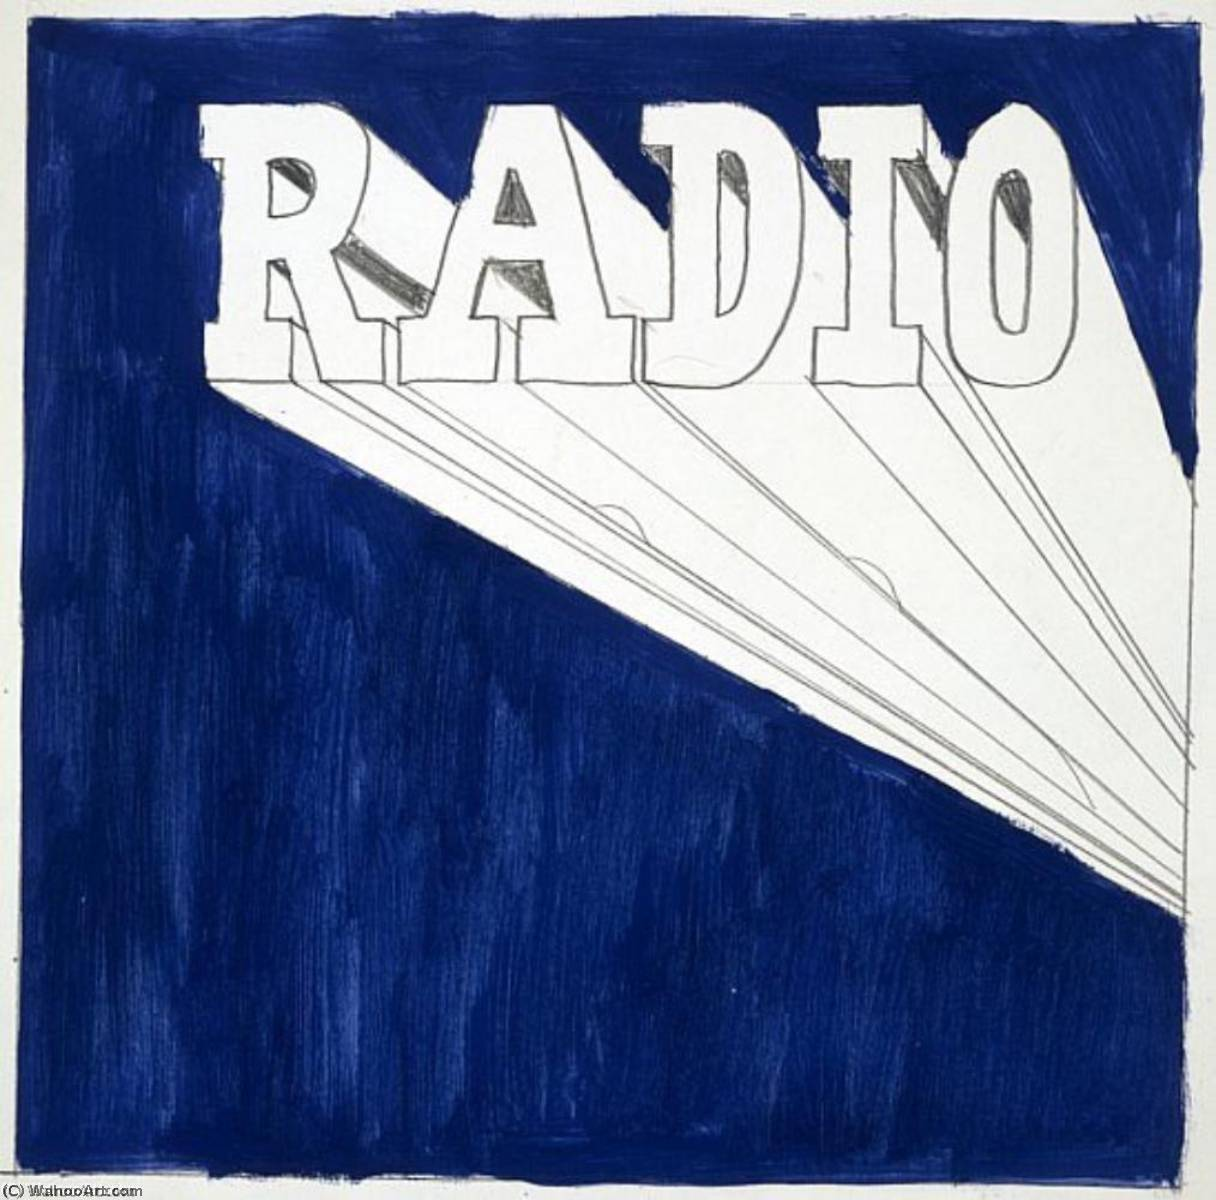 famous painting rádio of Edward Ruscha